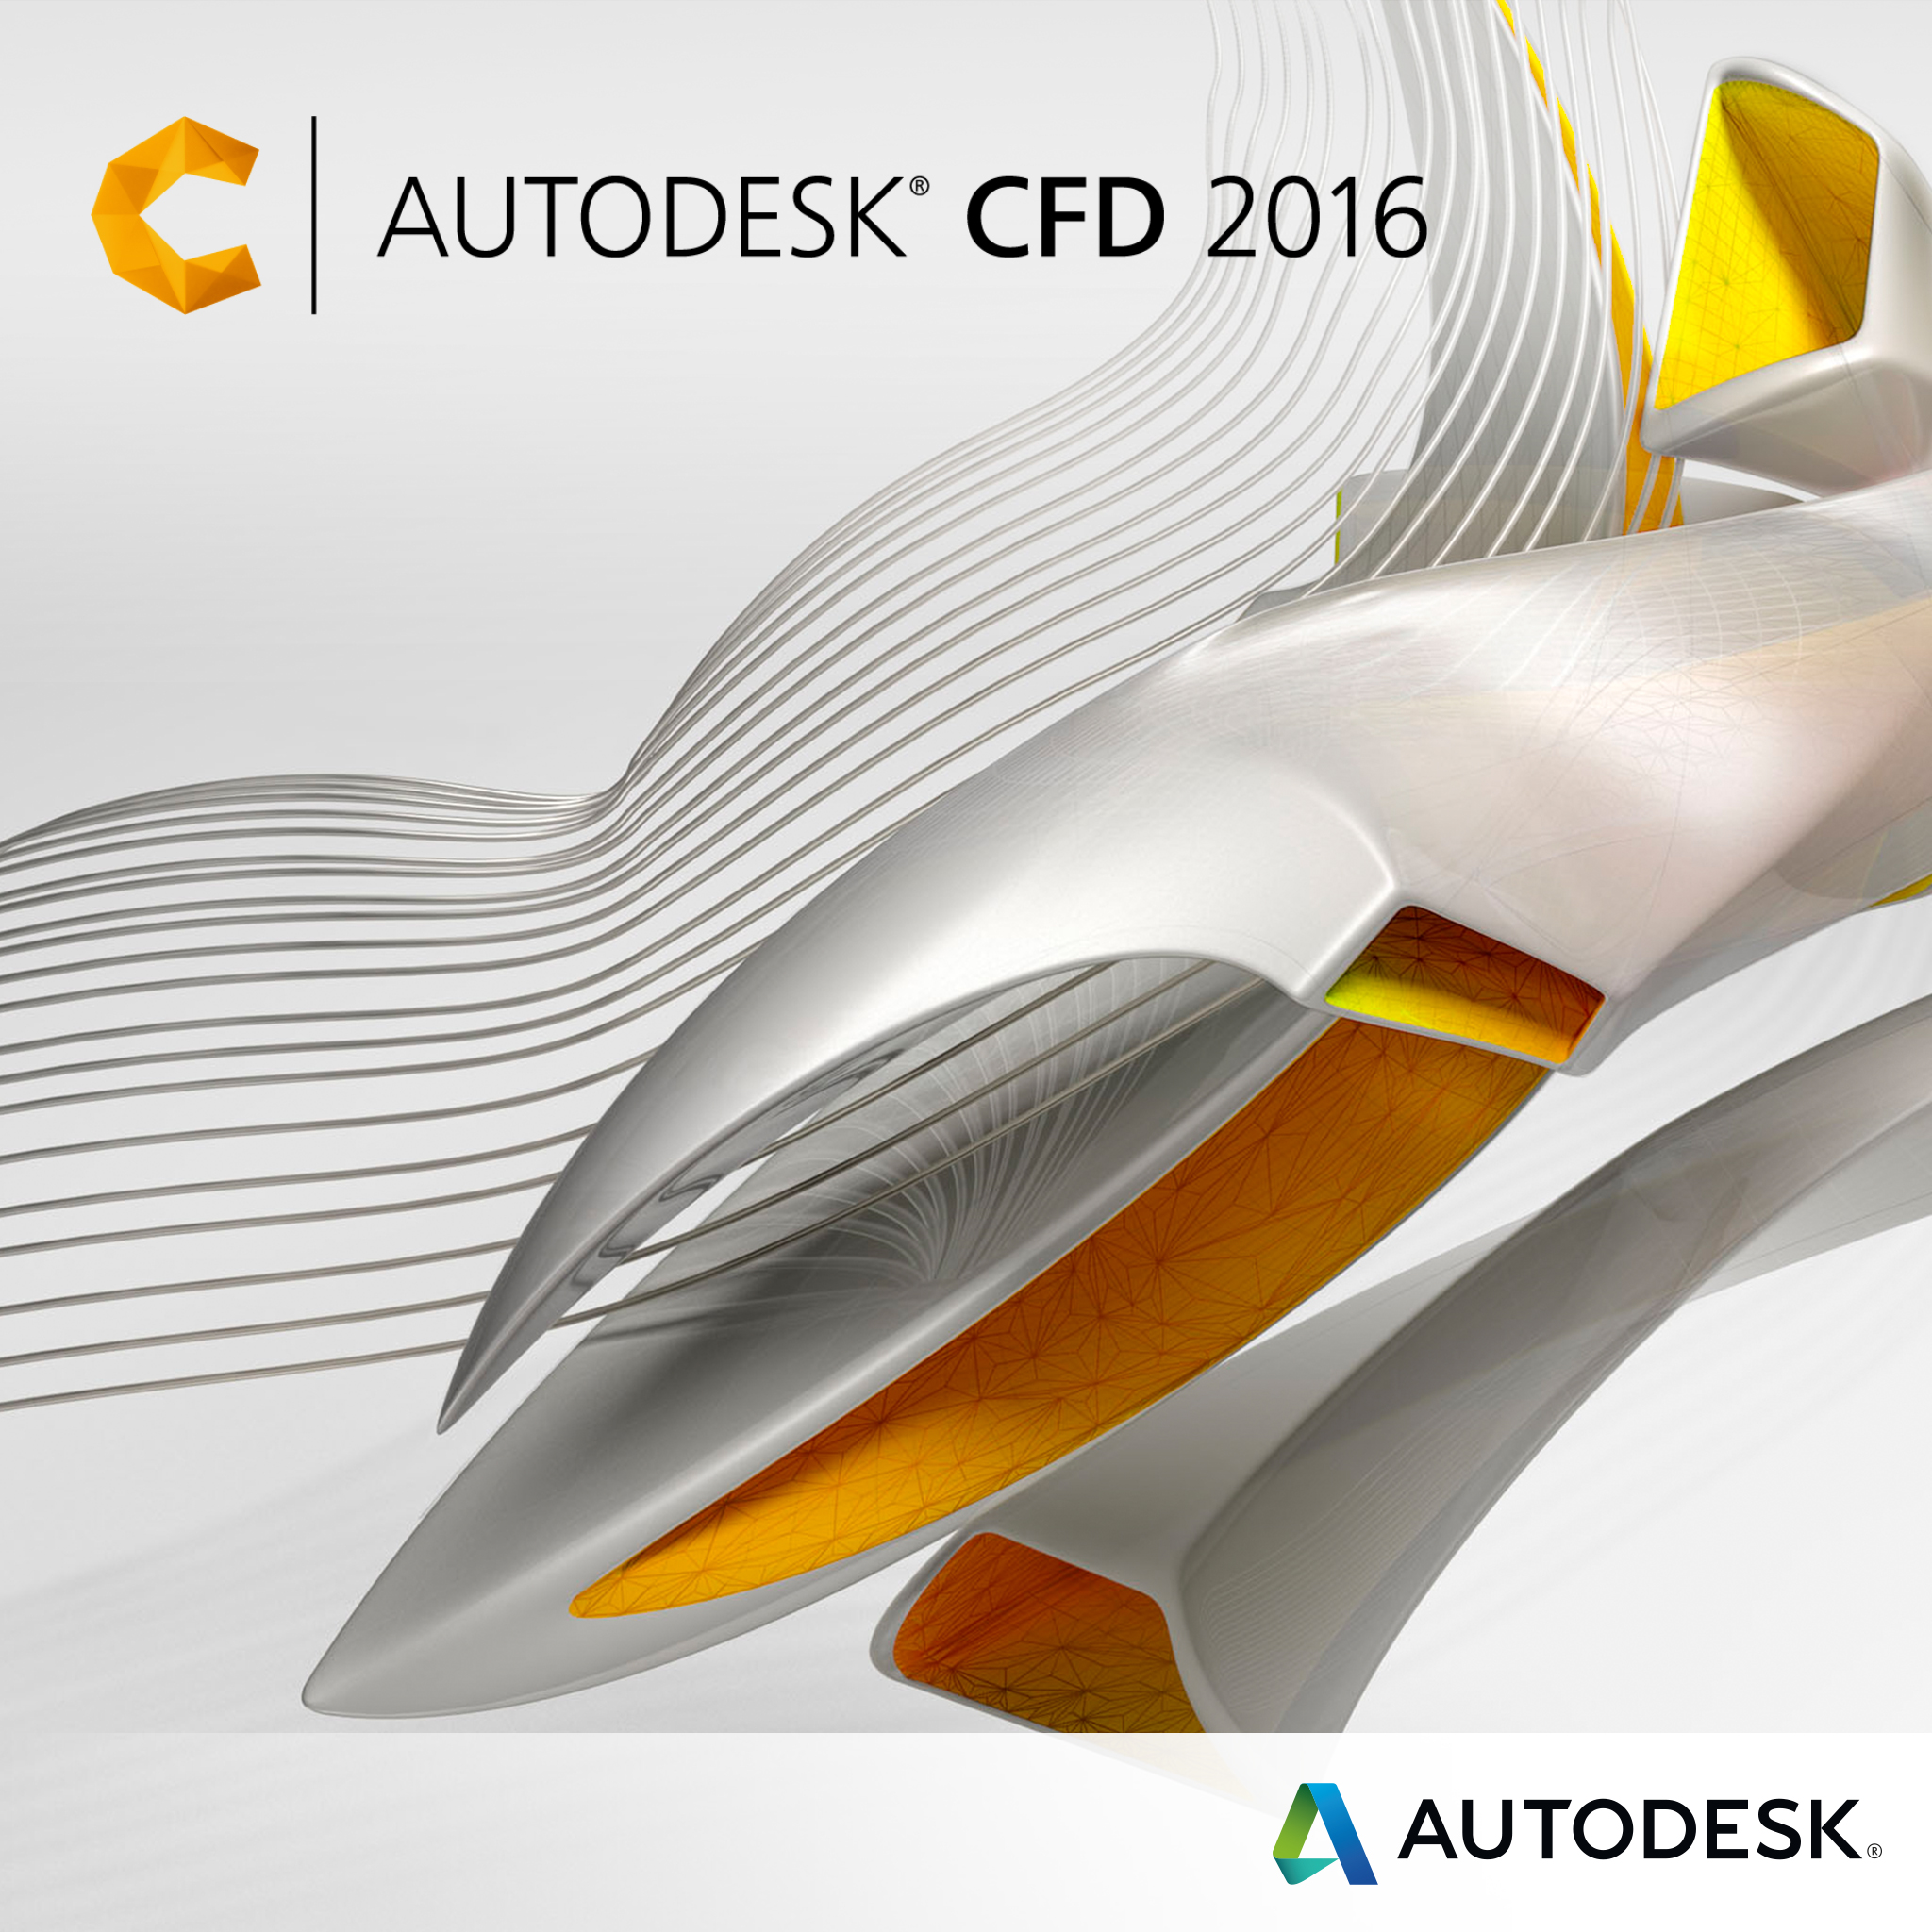 Autodesk  3D Design Engineering amp Entertainment Software